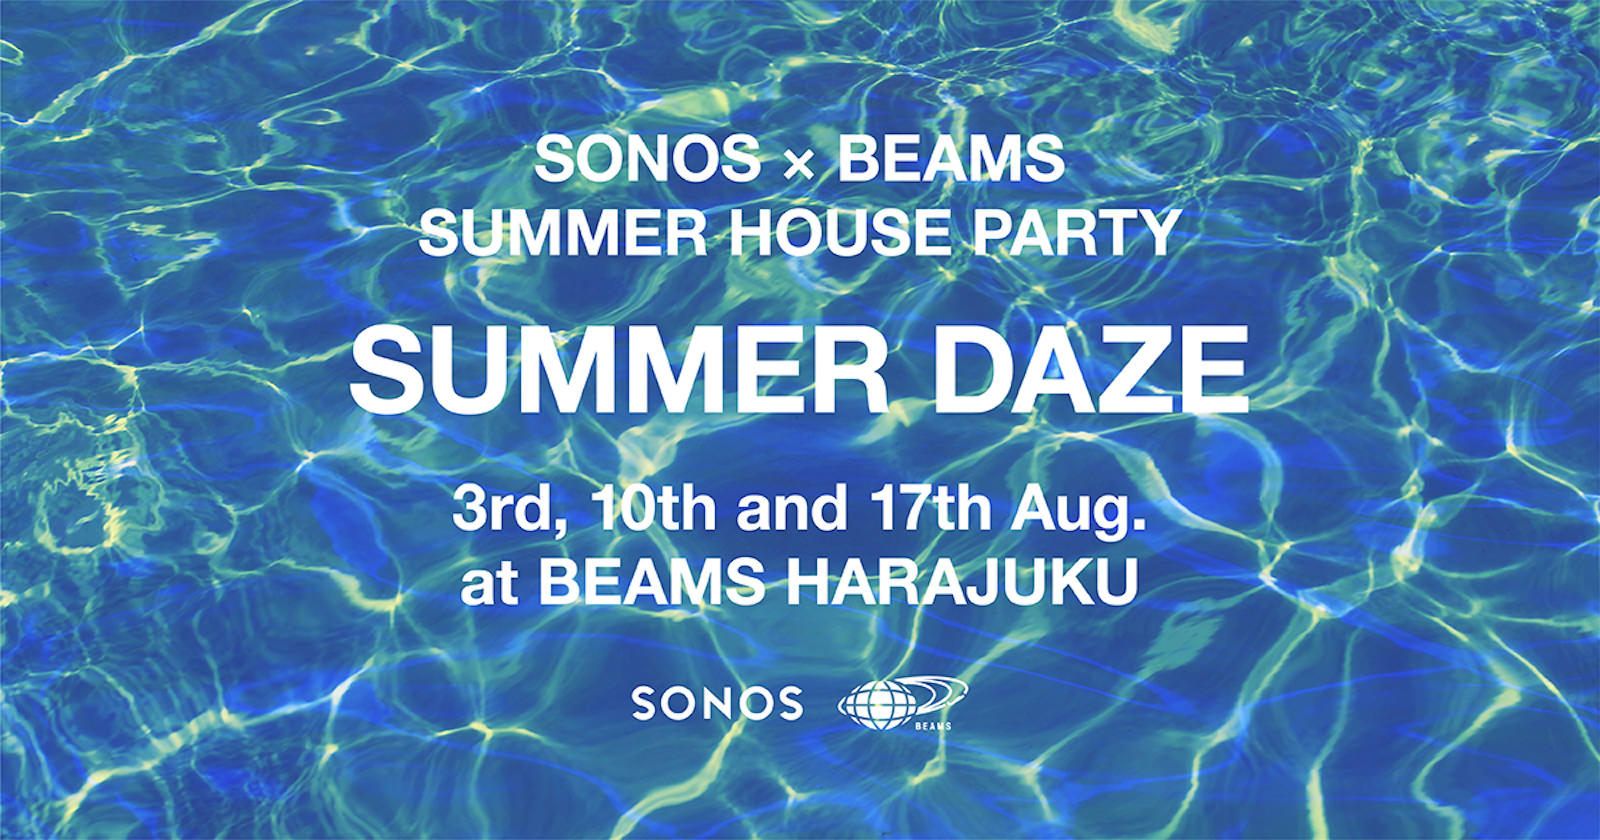 Beams Special Sonos Event